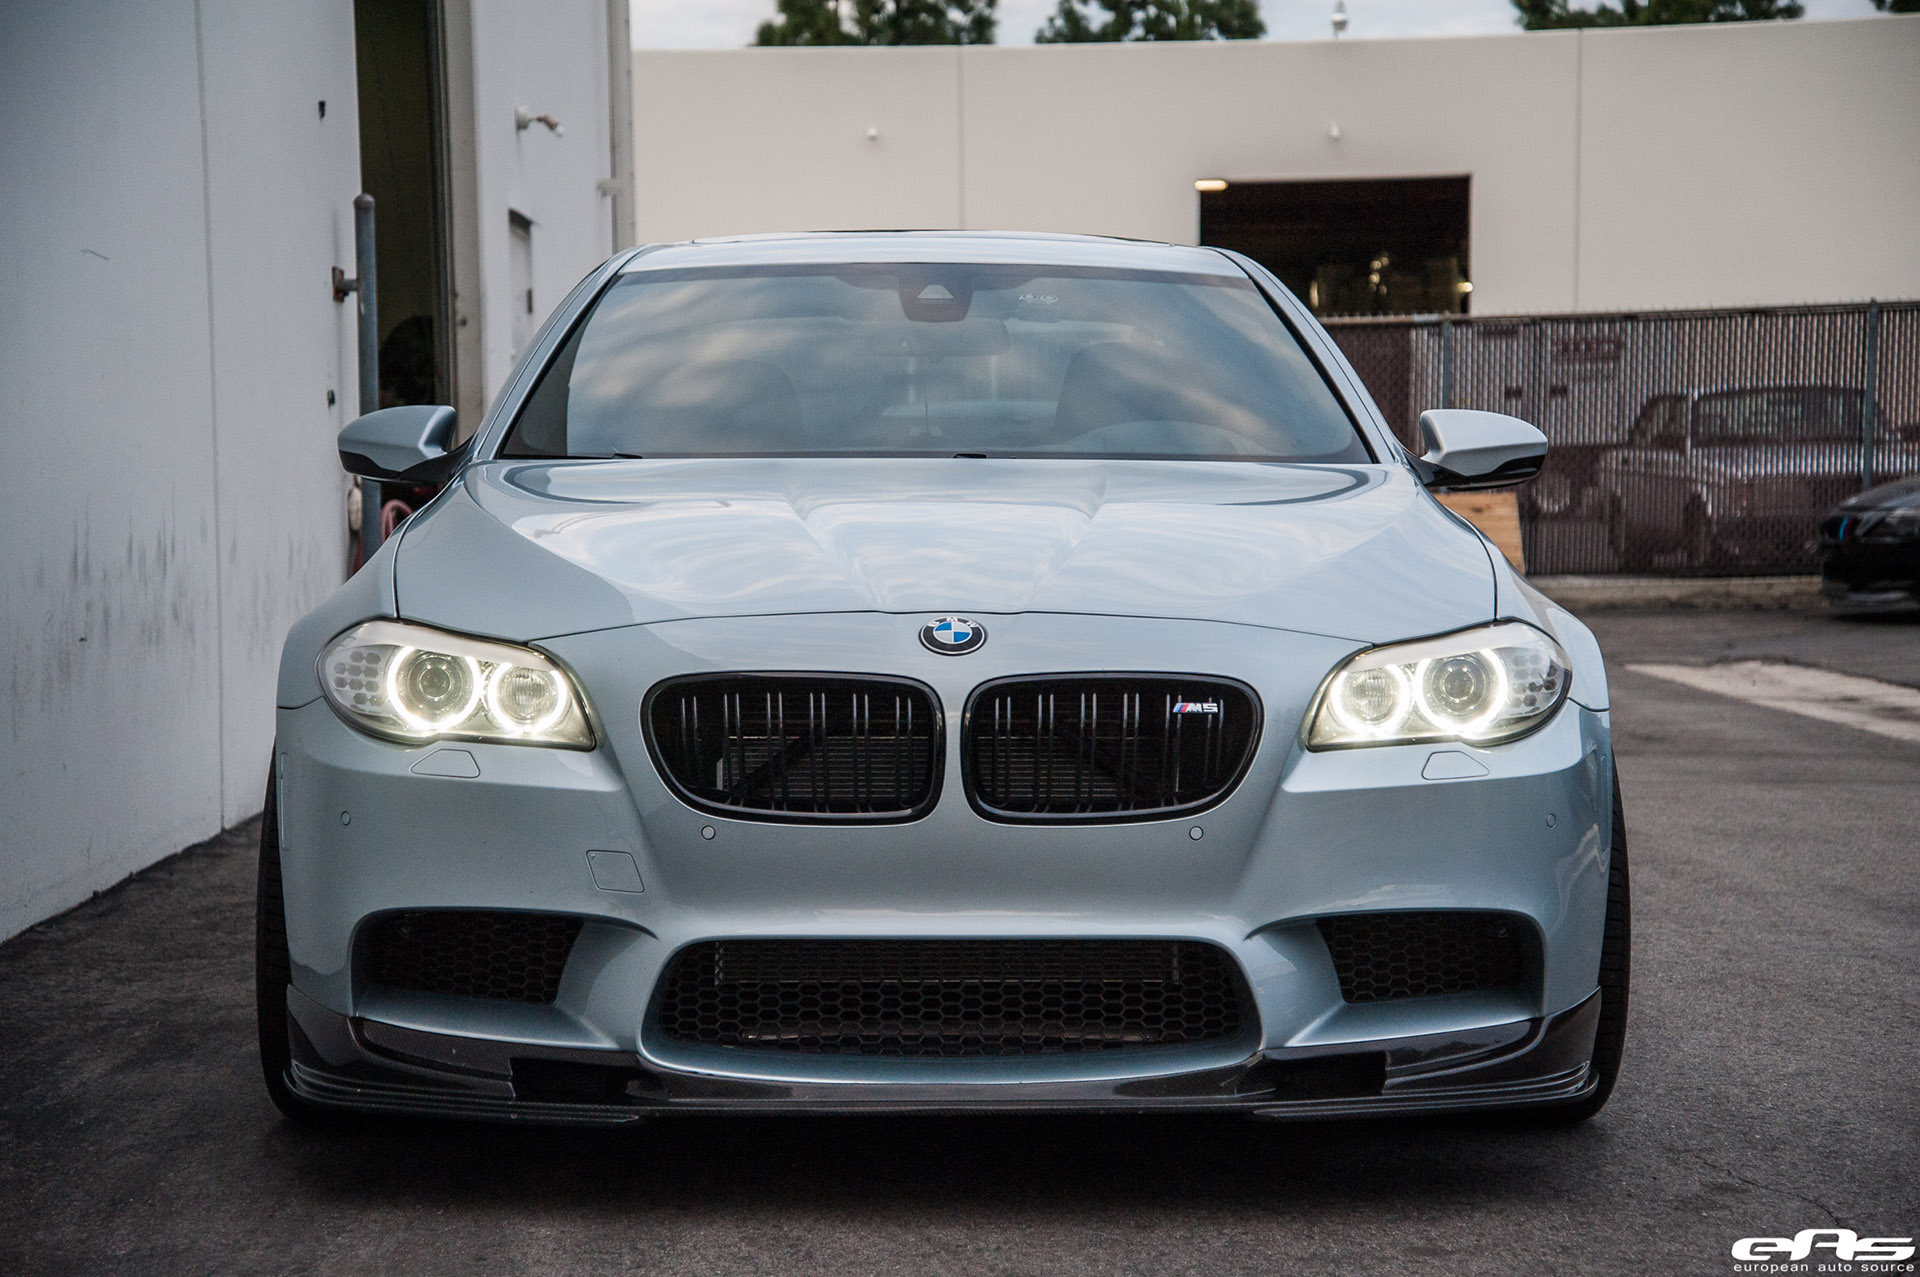 Silverstone Bmw M5 With Blue Wheels Amp A Custom Exhaust Installed